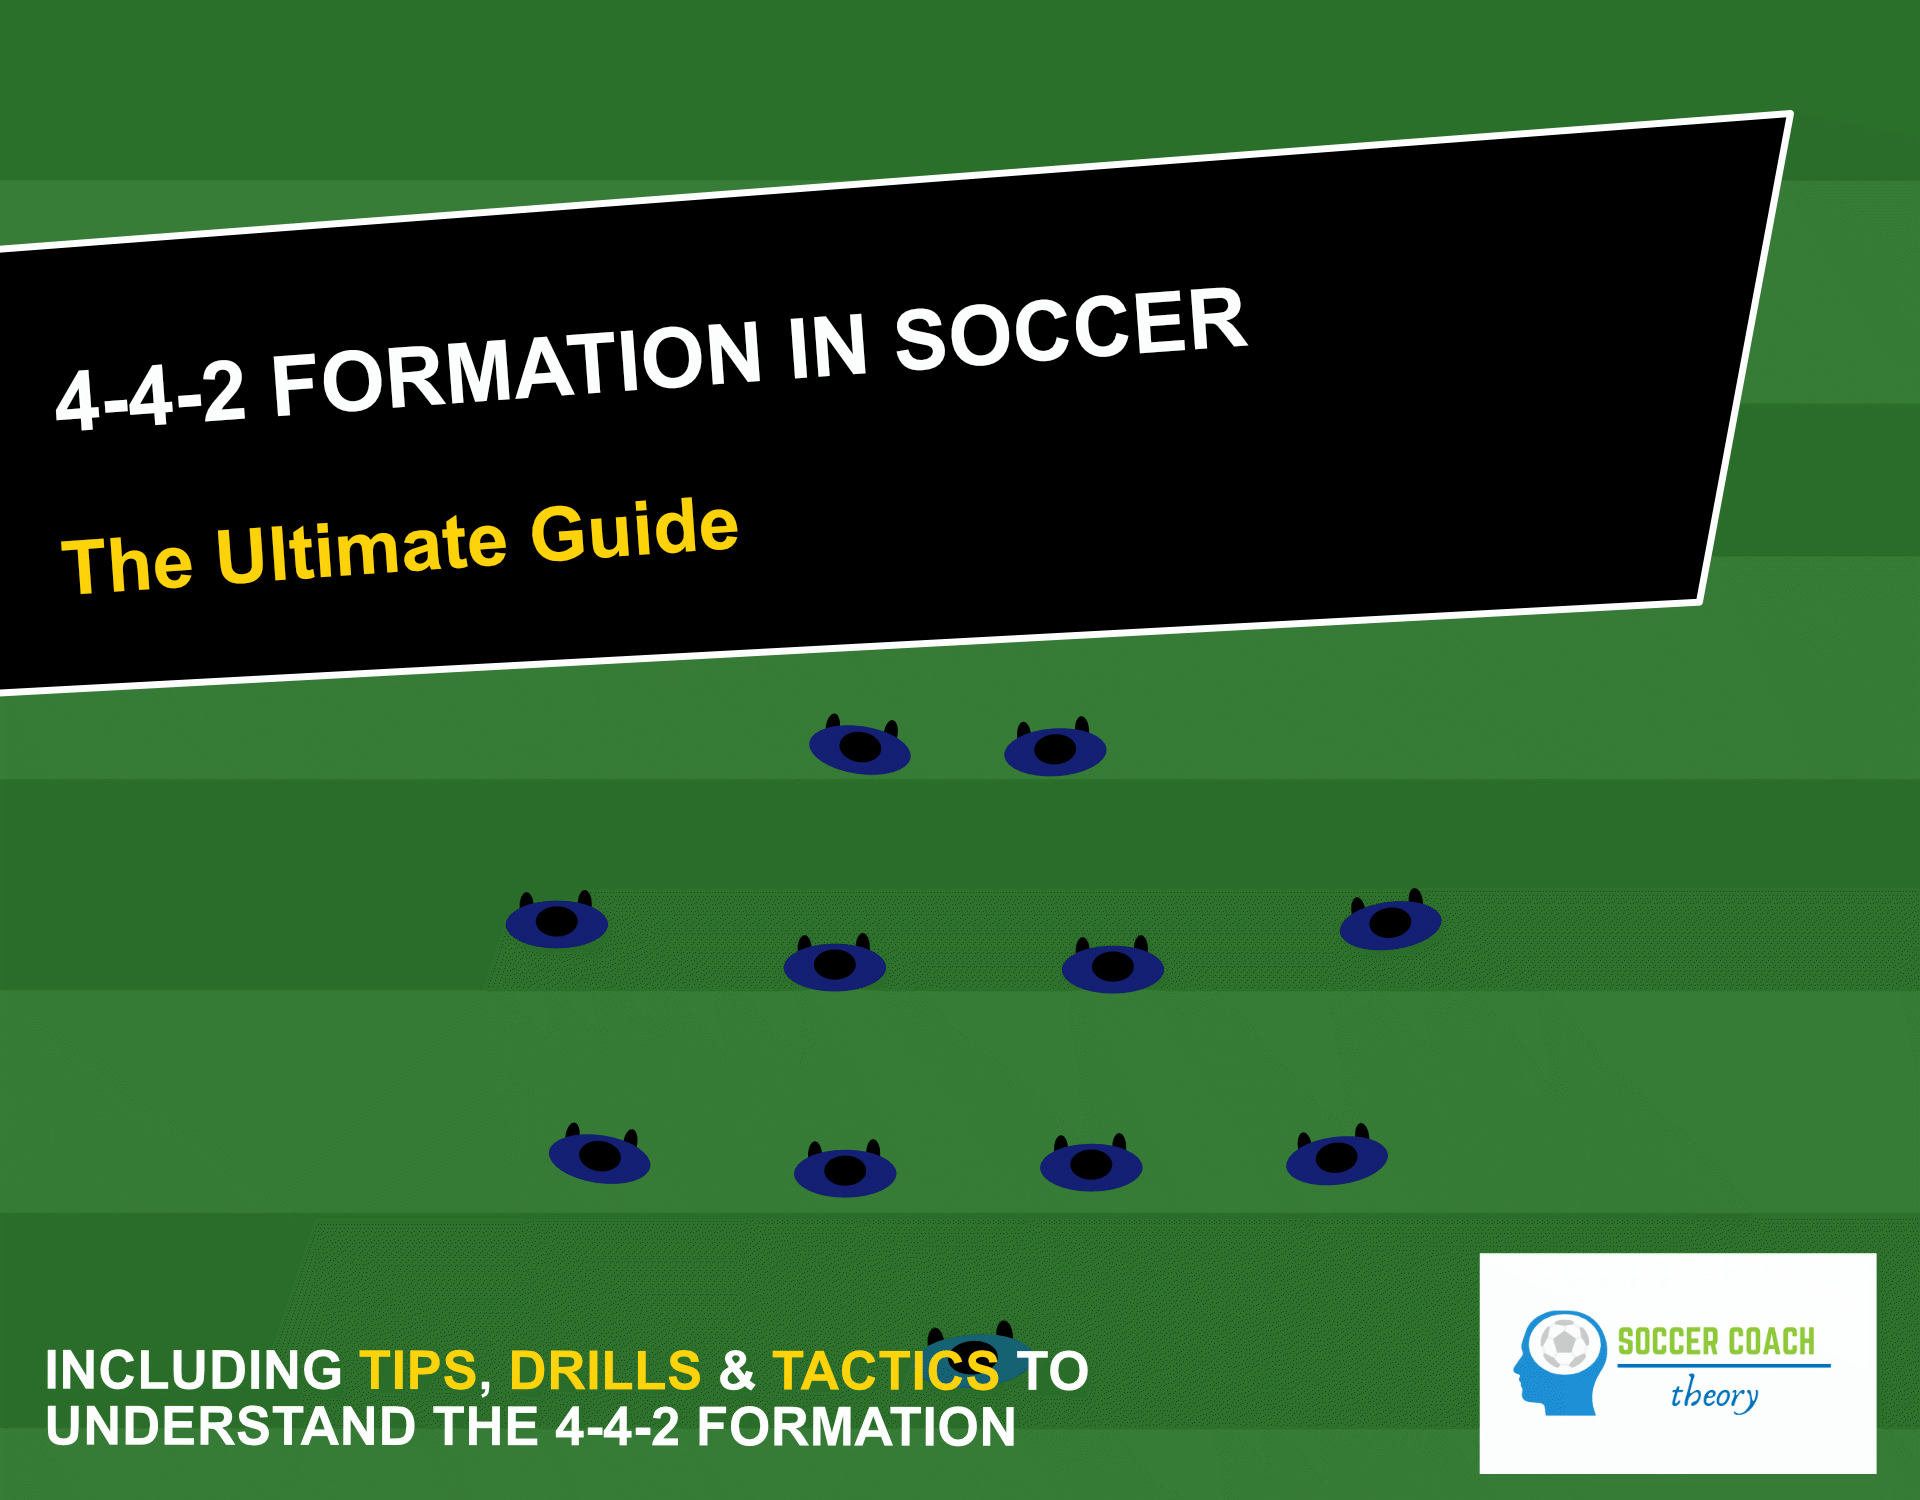 4-4-2 soccer formation - the ultimate guide